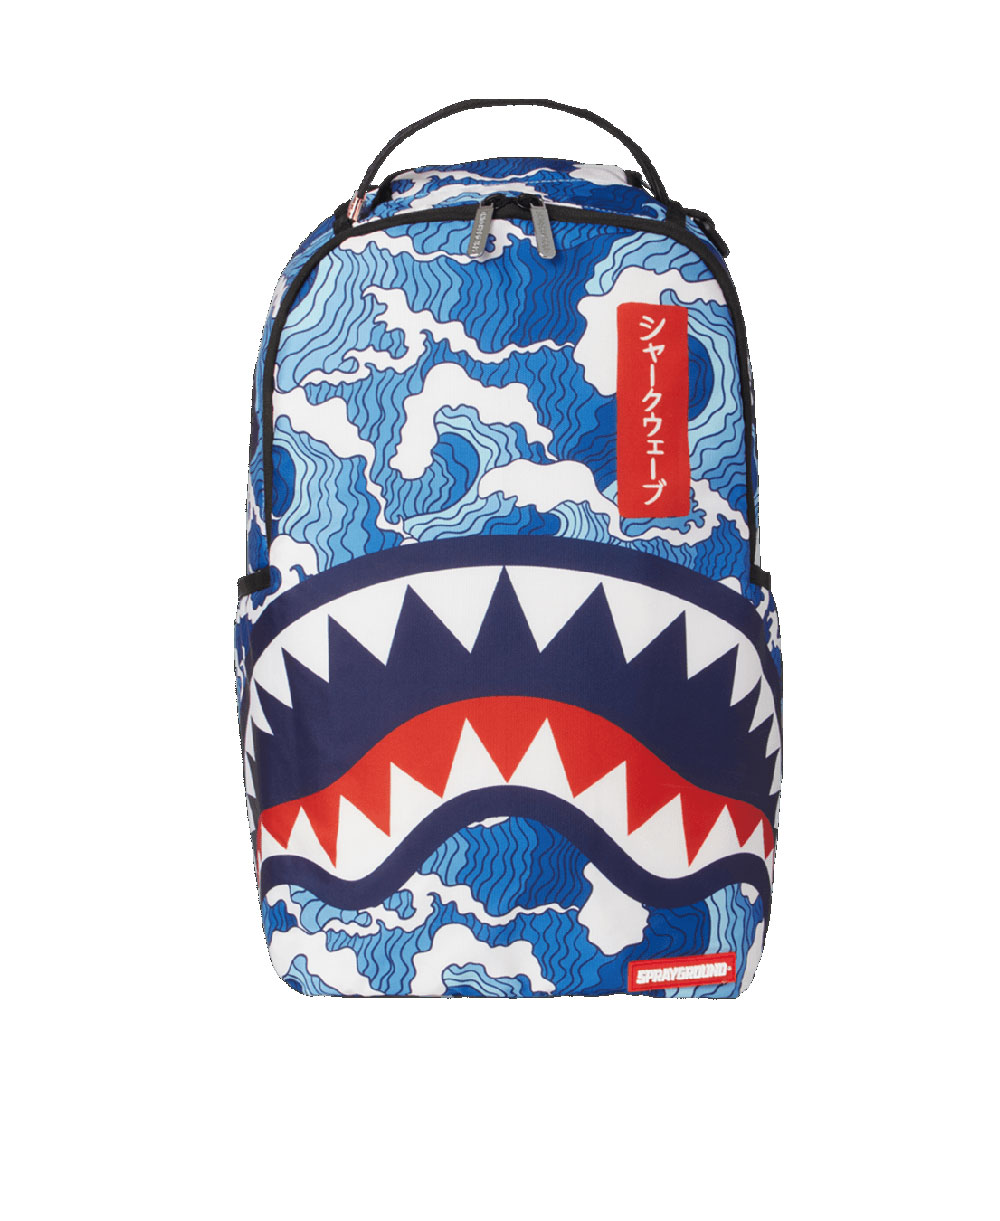 The Shark Wave Backpack